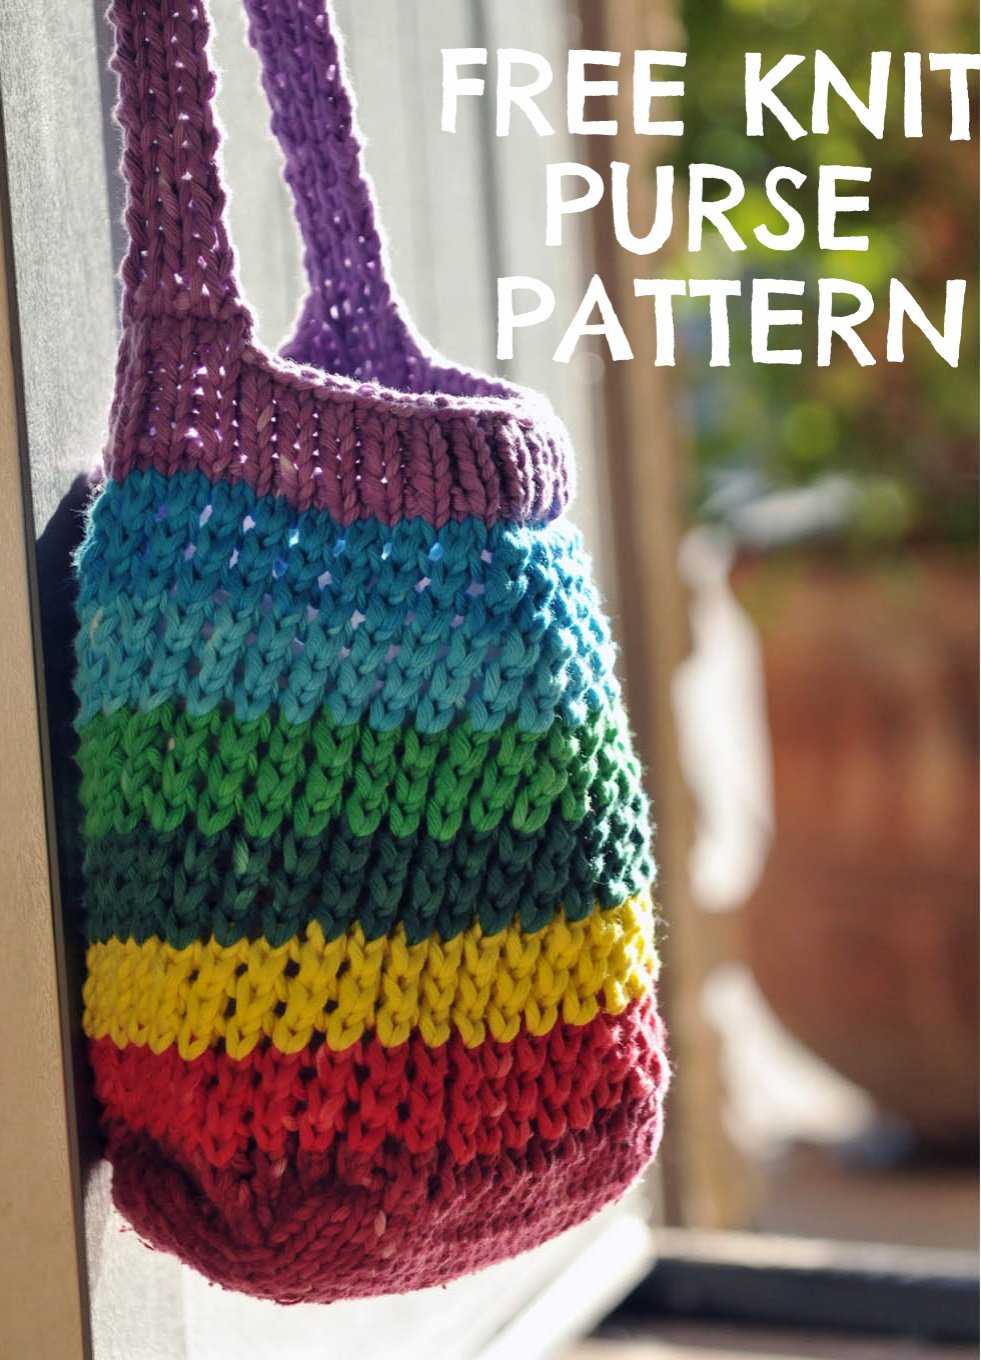 Learn how to knit a rainbow cross-body bag! Knit Purse Patterns FREE knit...